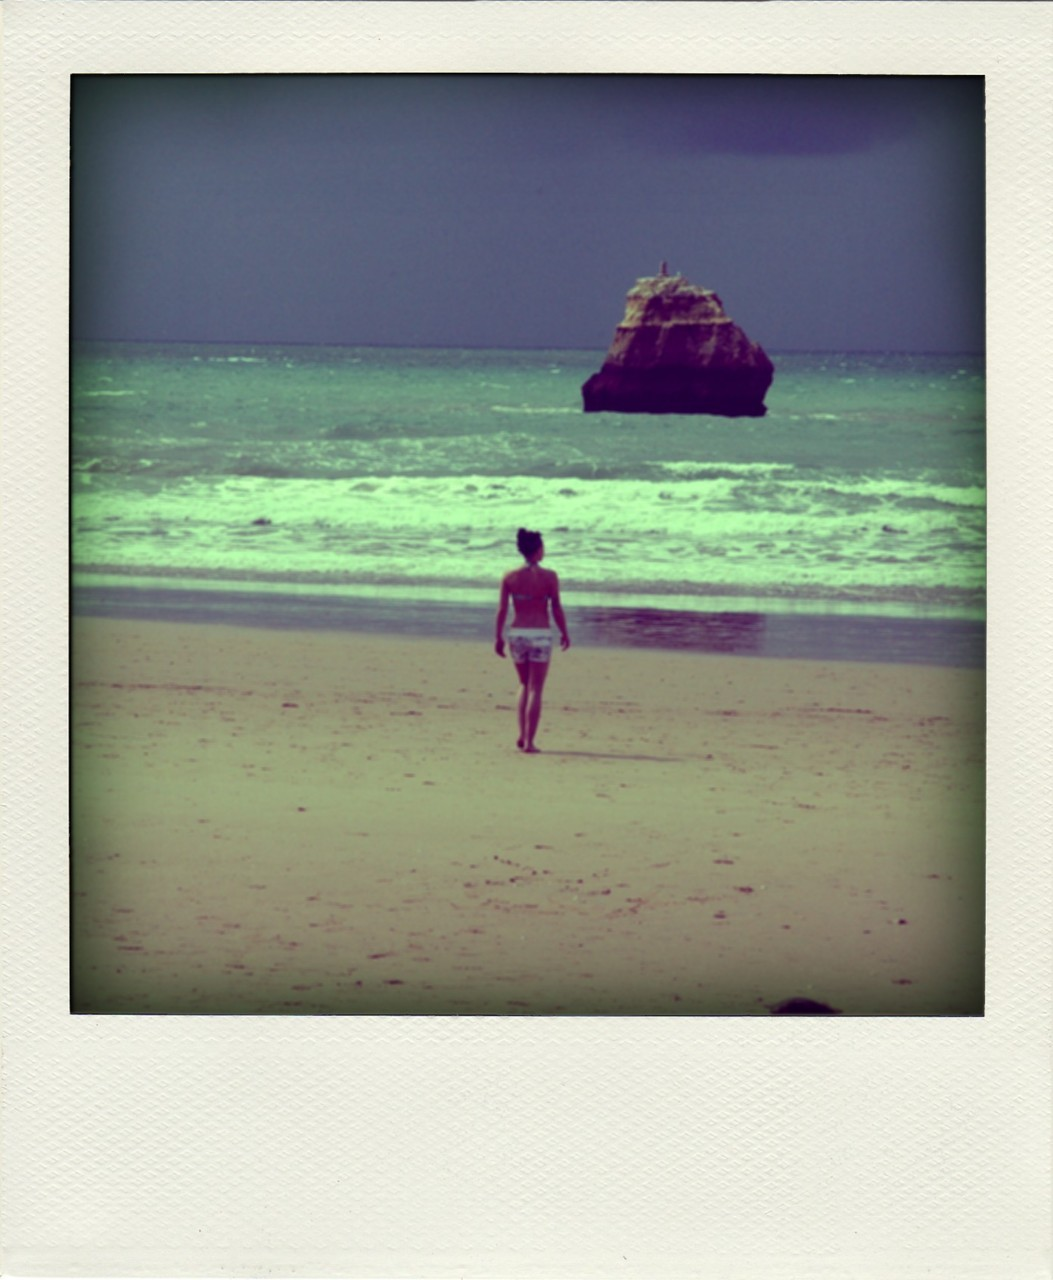 Found this really cool app which can make digital pictures into polaroids… My new favourite thing to pass the time!!!